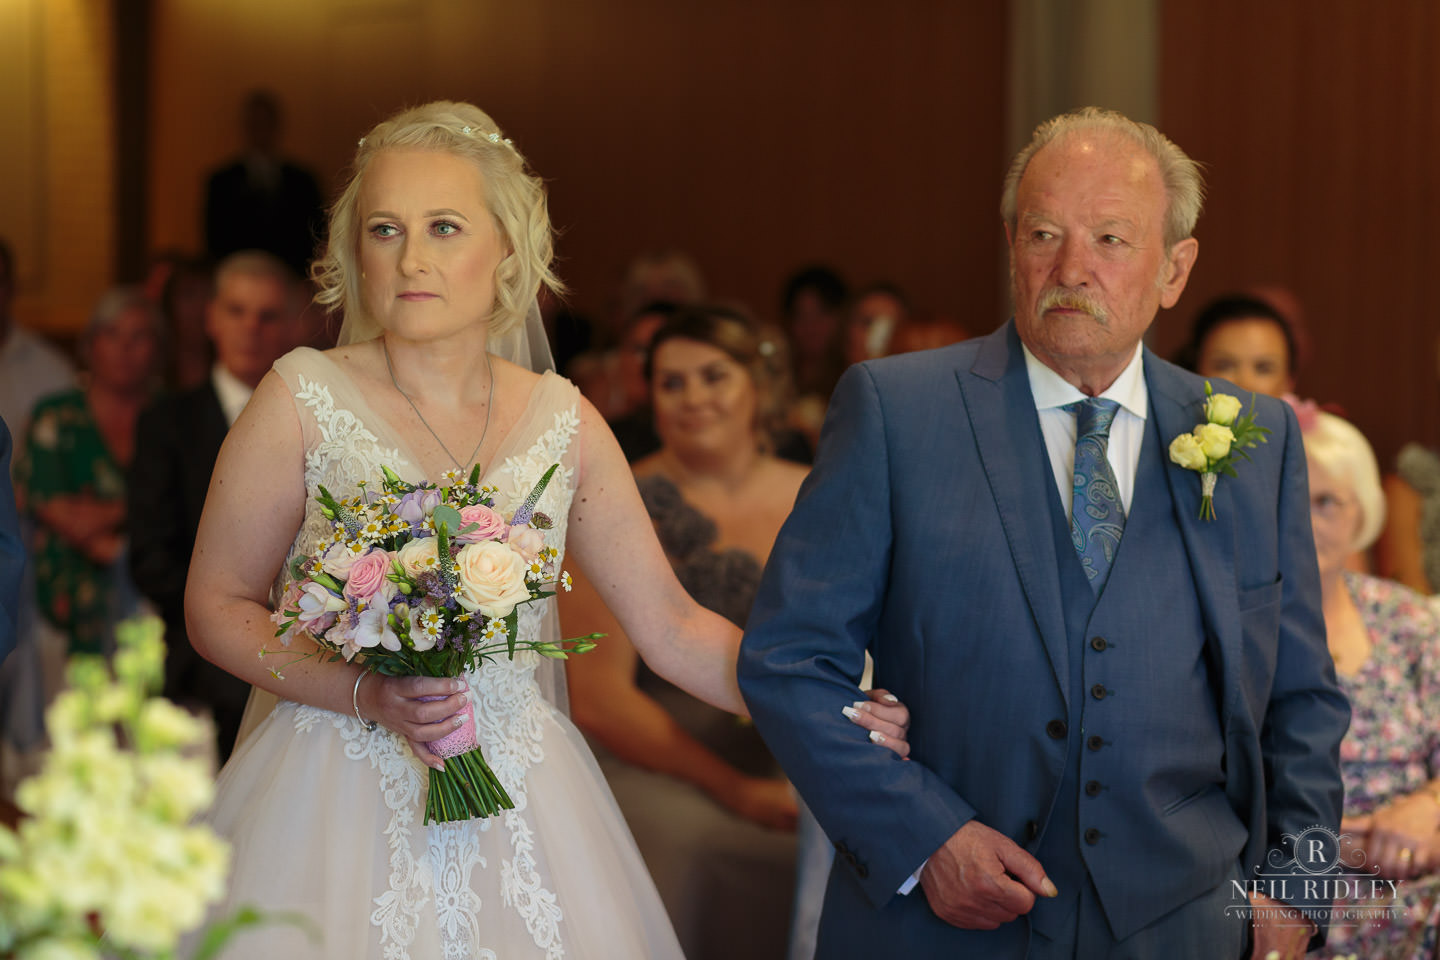 Bride and her father walking down the aisle at Macdonald Portal Hotel, Tarporley